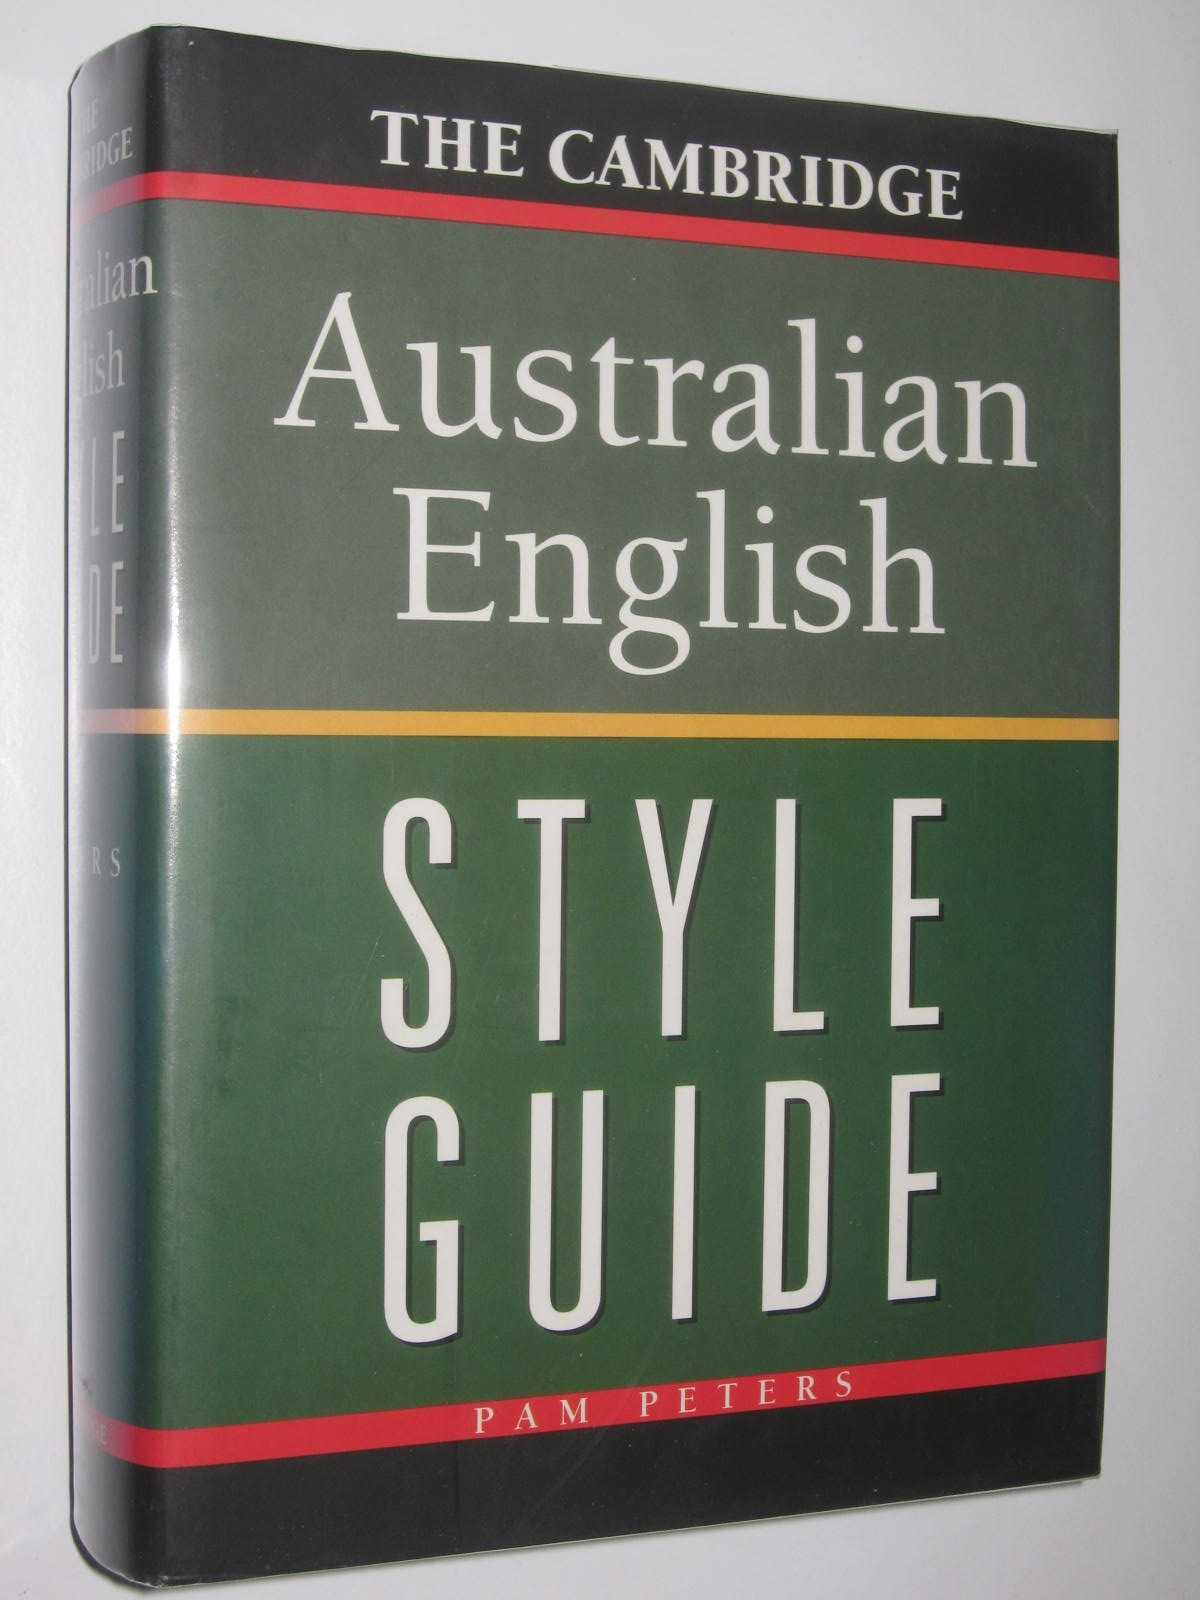 Image for The Cambridge Australian English Style Guide